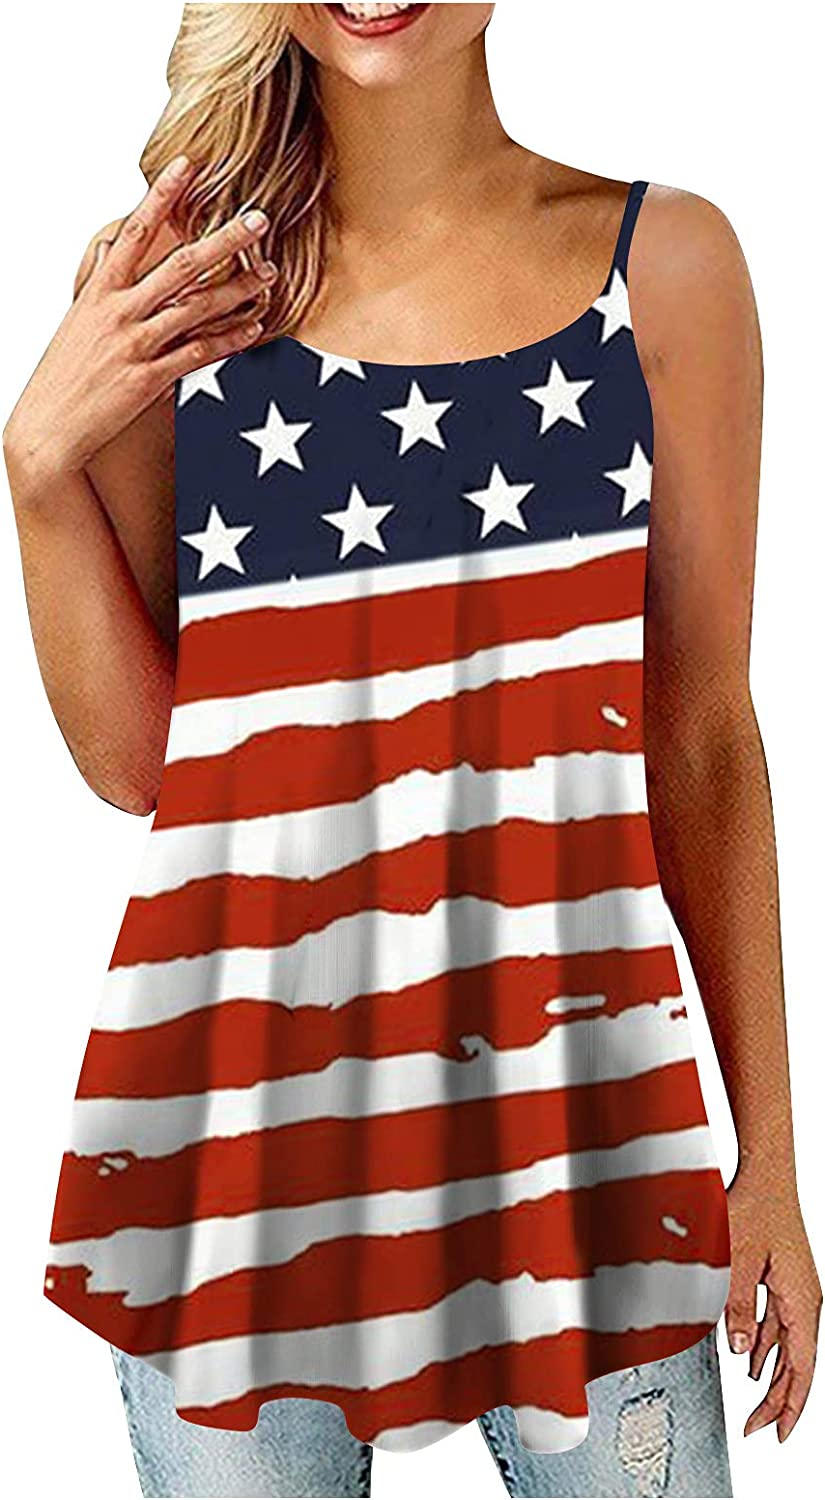 KEoans Summer T-Shirt Women's Vest Fashion Independence Day Printing Casual Loose Sleeveless Vest Top